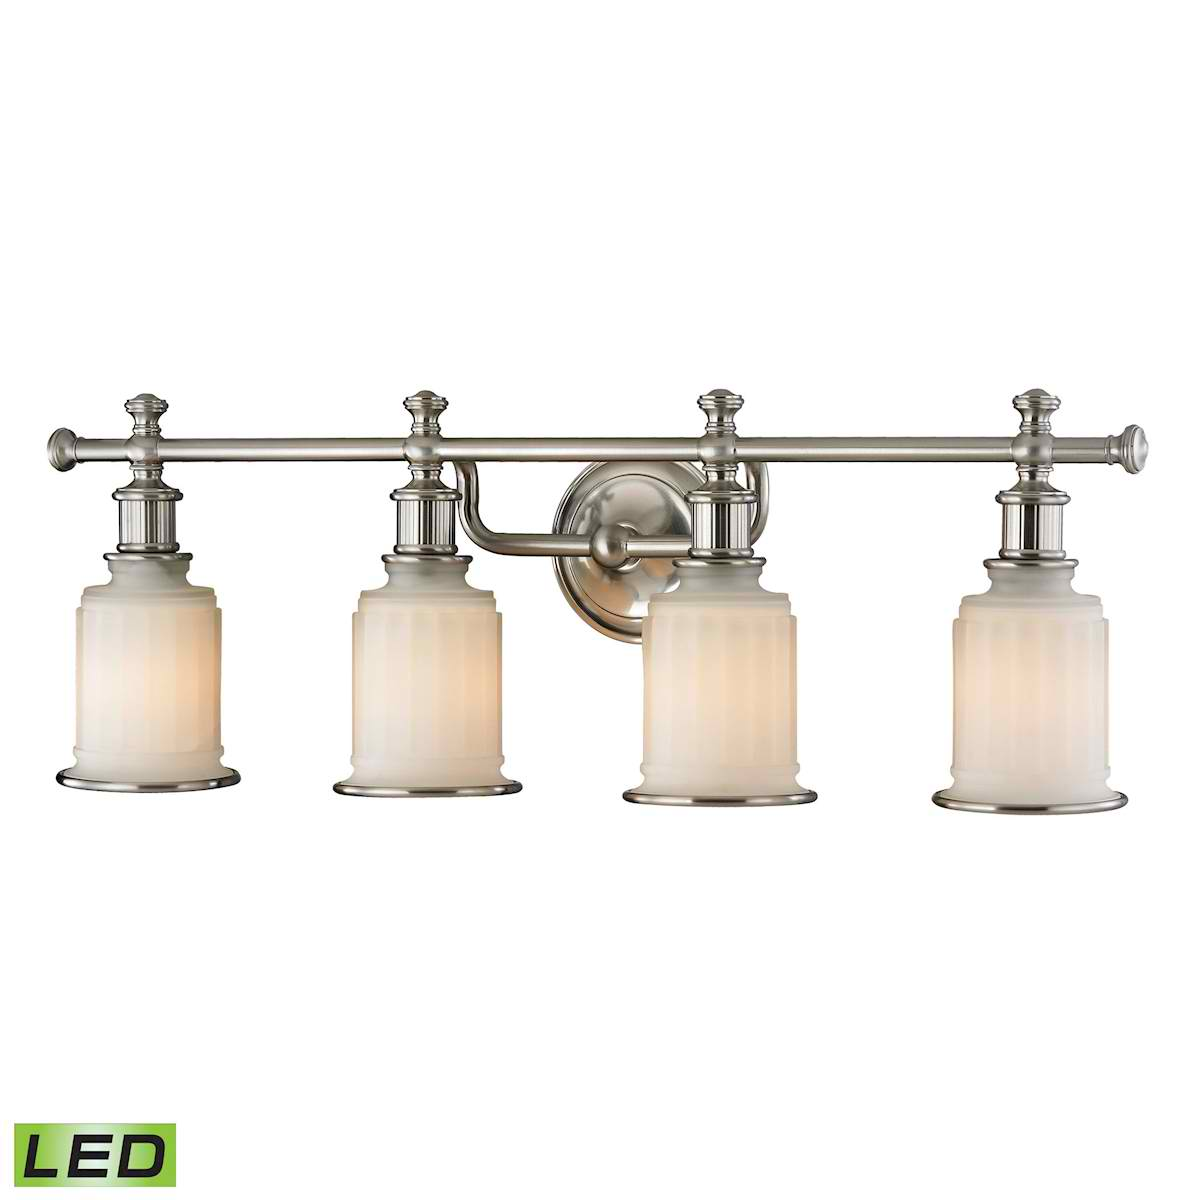 Acadia Collection 4 Light Bath in Brushed Nickel - LED, 800 Lumens (3200 Lumens Total) with Full Scale